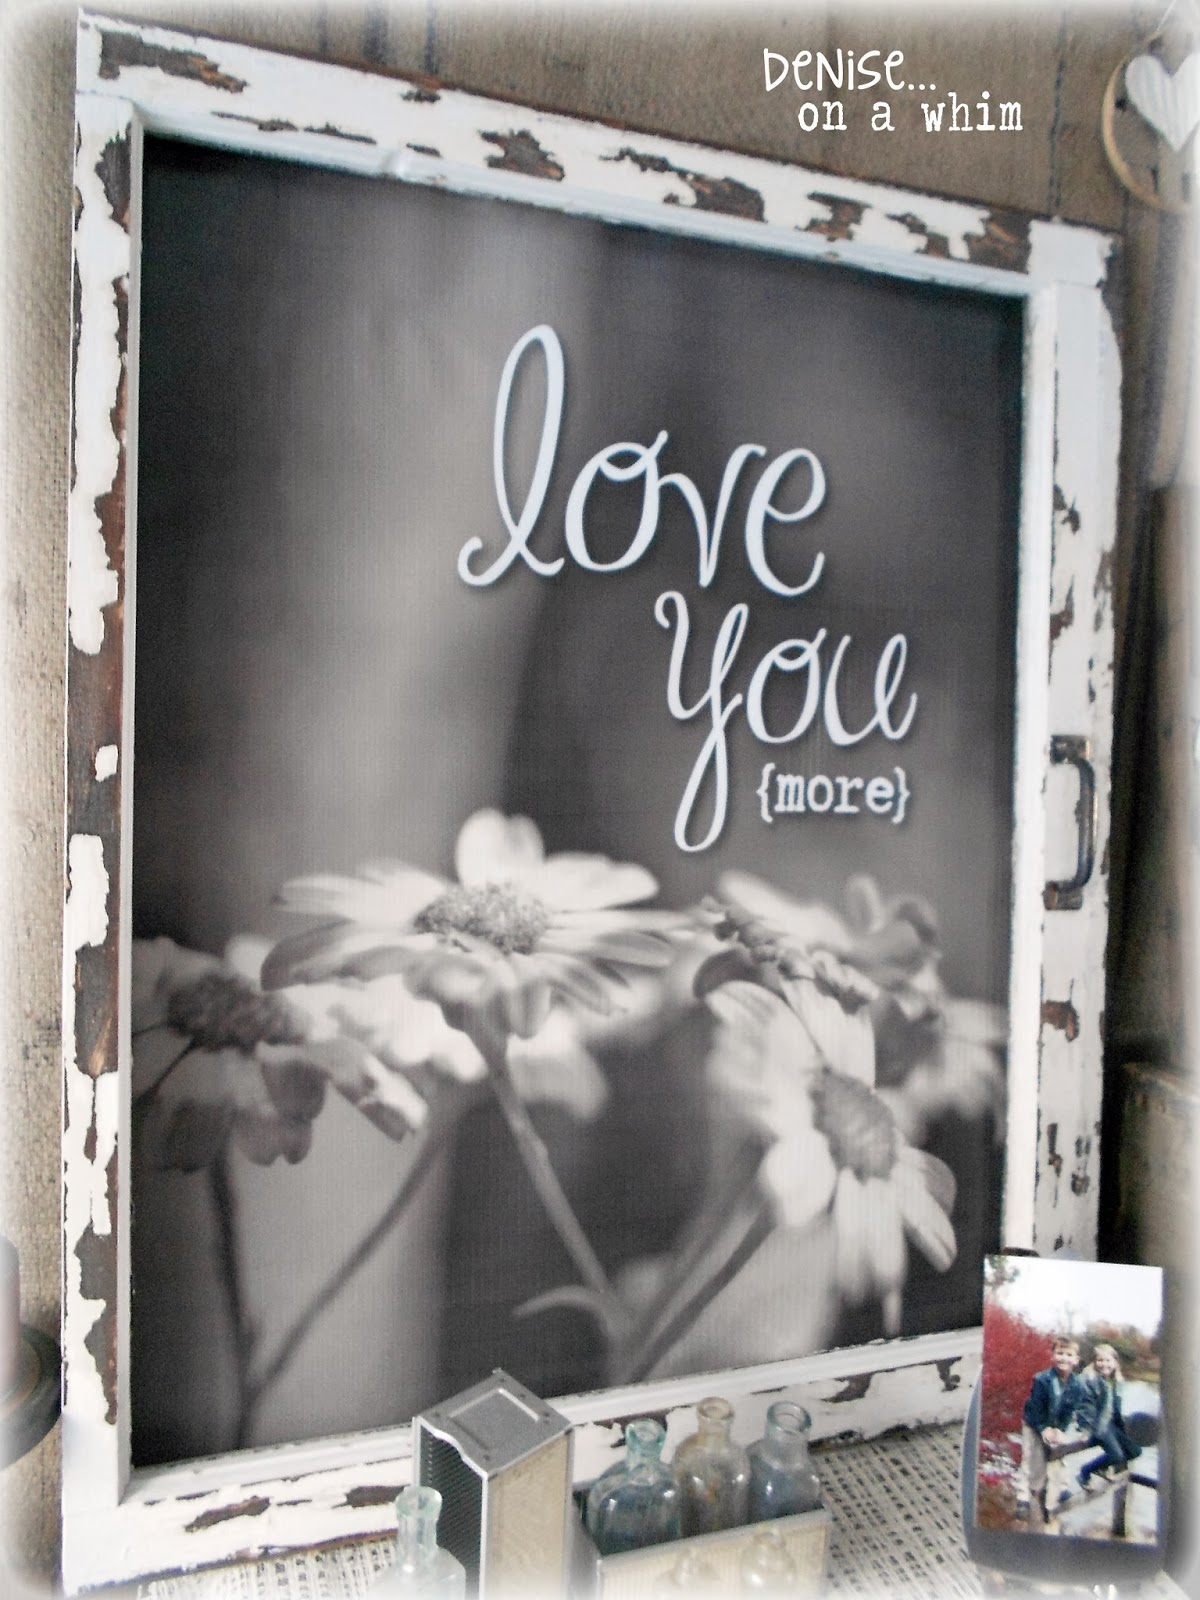 Romantic Photo as Background for a Love Sign via http:/deniseonawhim.blogspot.com